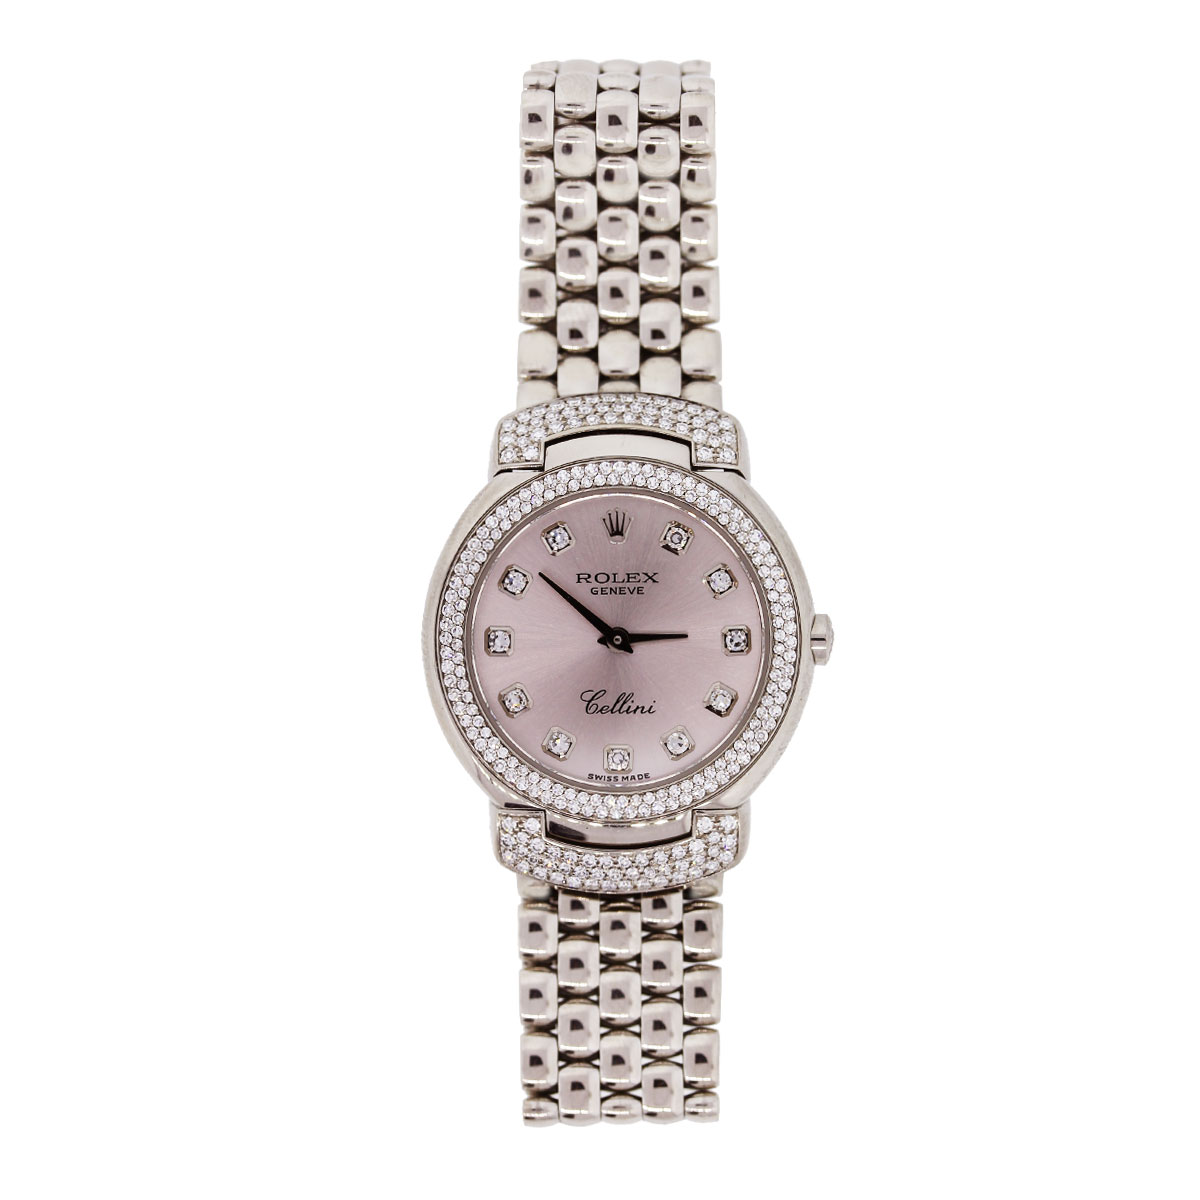 Diamond Watch Rolex Cellini 6673 White Gold Pink Diamond Dial Diamond